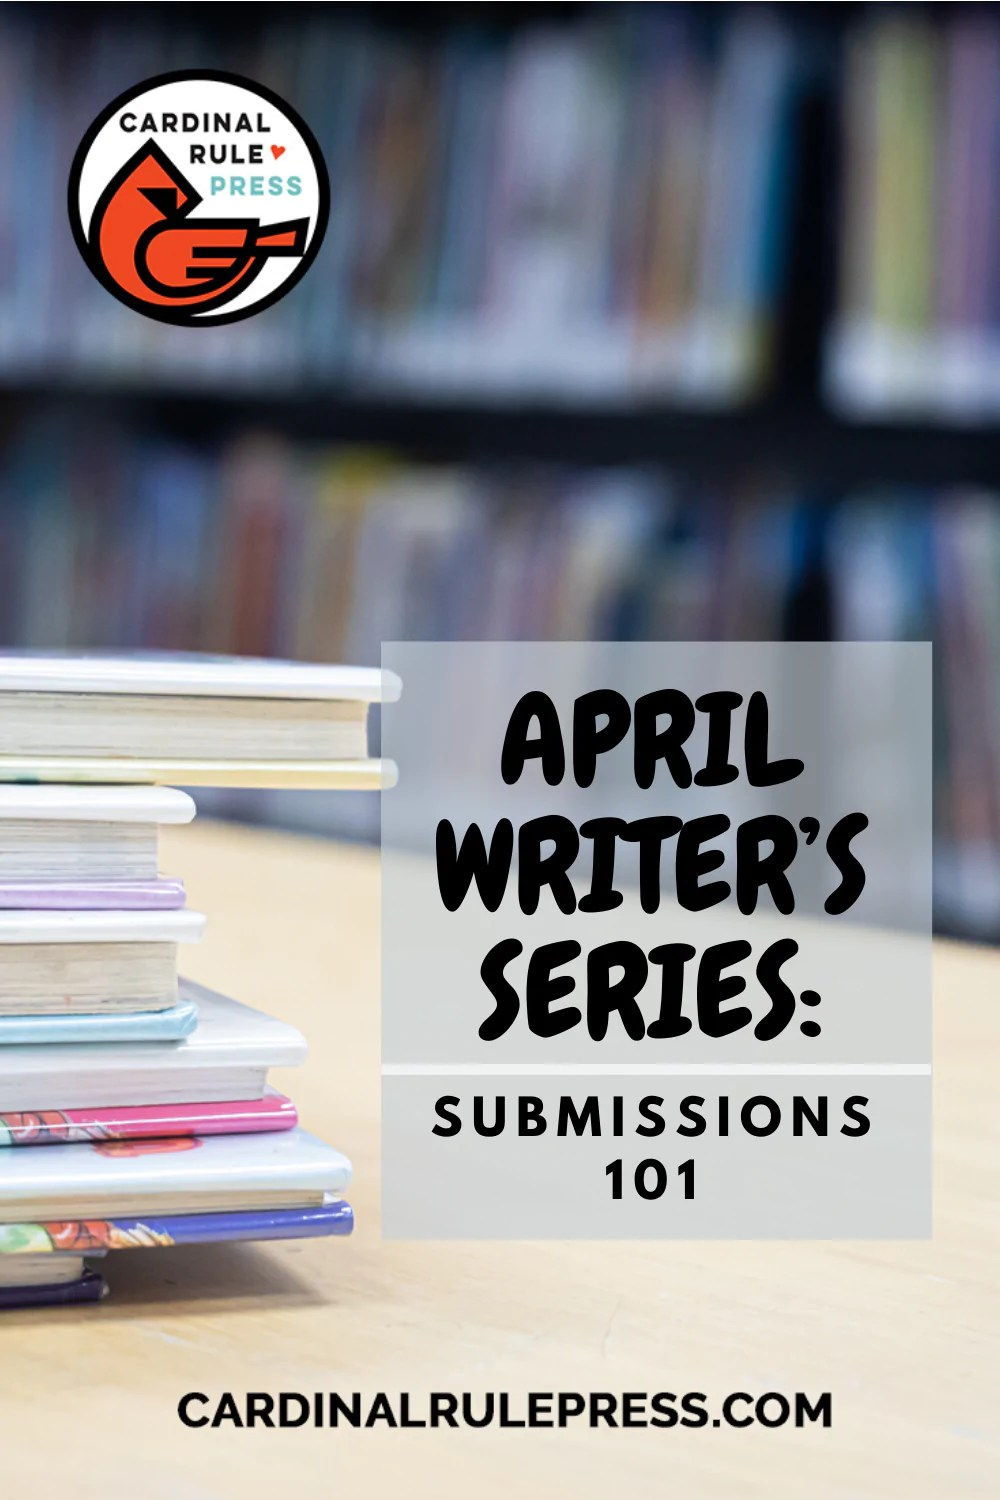 April Writer's Series: Submissions 101